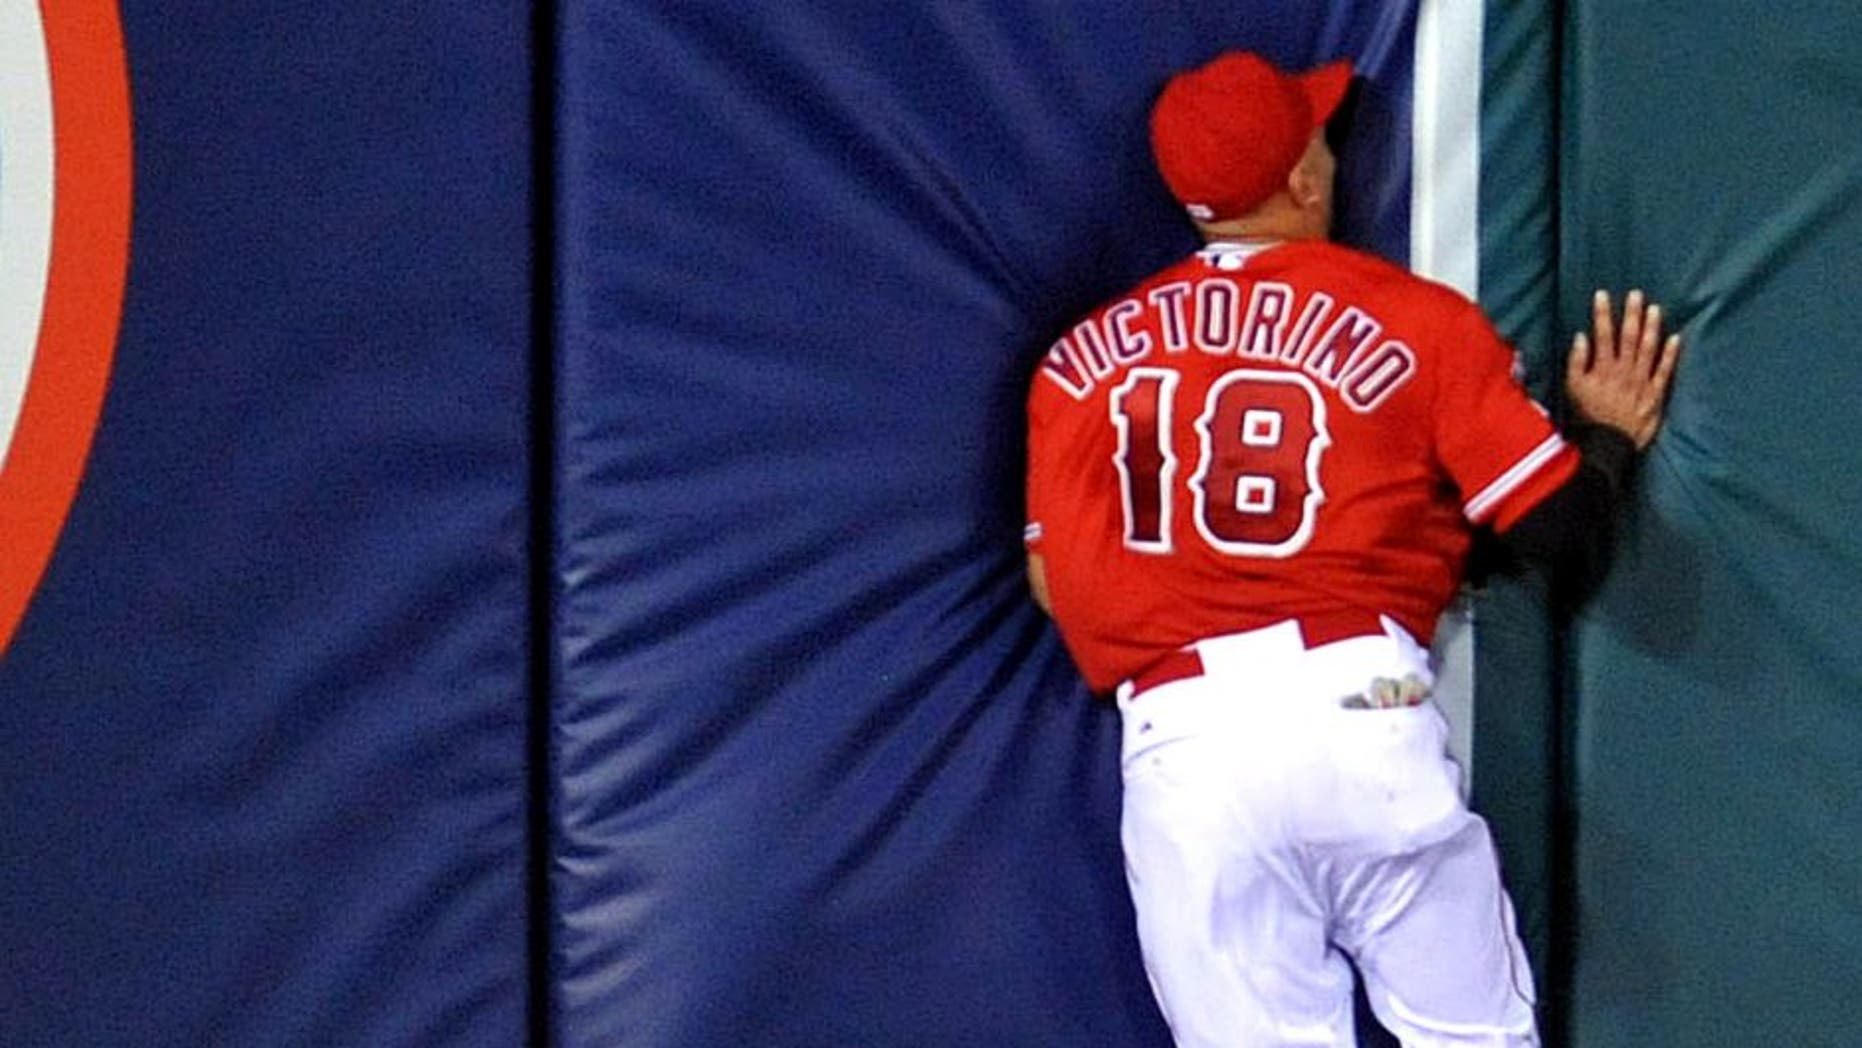 September 4, 2015; Anaheim, CA, USA; Los Angeles Angels left fielder Shane Victorino (18) runs into the wall after missing a fly ball in the seventh inning against the Texas Rangers at Angel Stadium of Anaheim. Mandatory Credit: Gary A. Vasquez-USA TODAY Sports